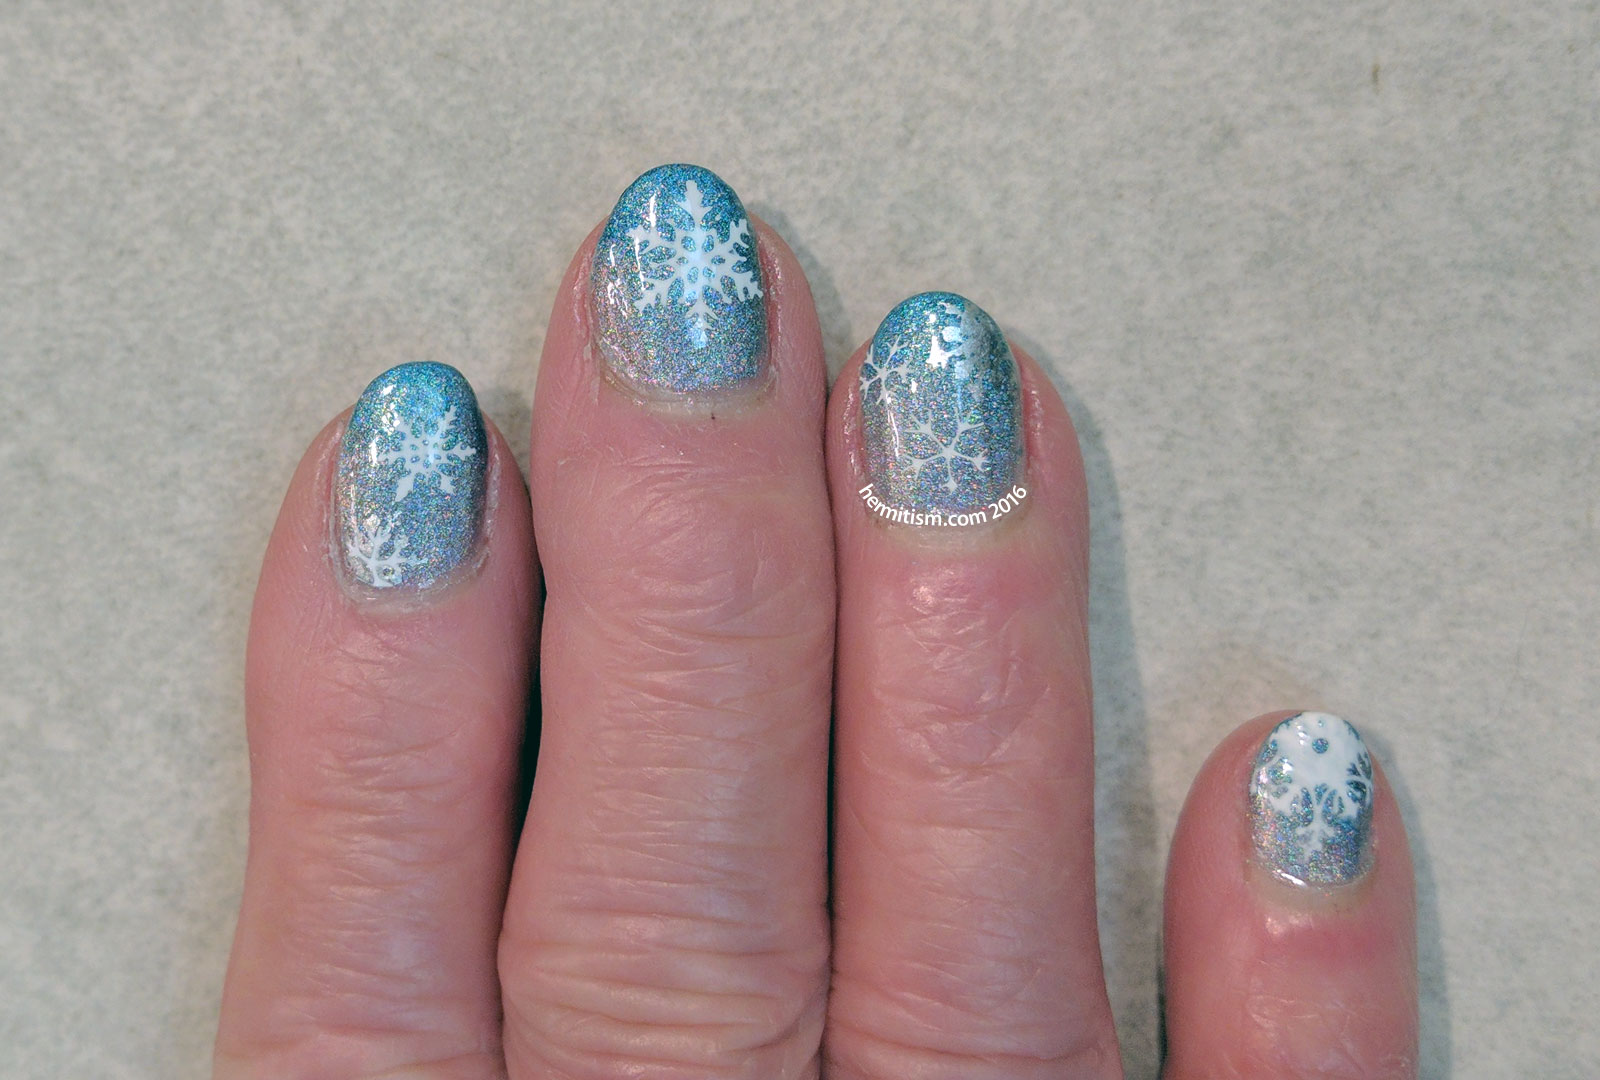 Family Manis - Snowflakes - Hermit Werds